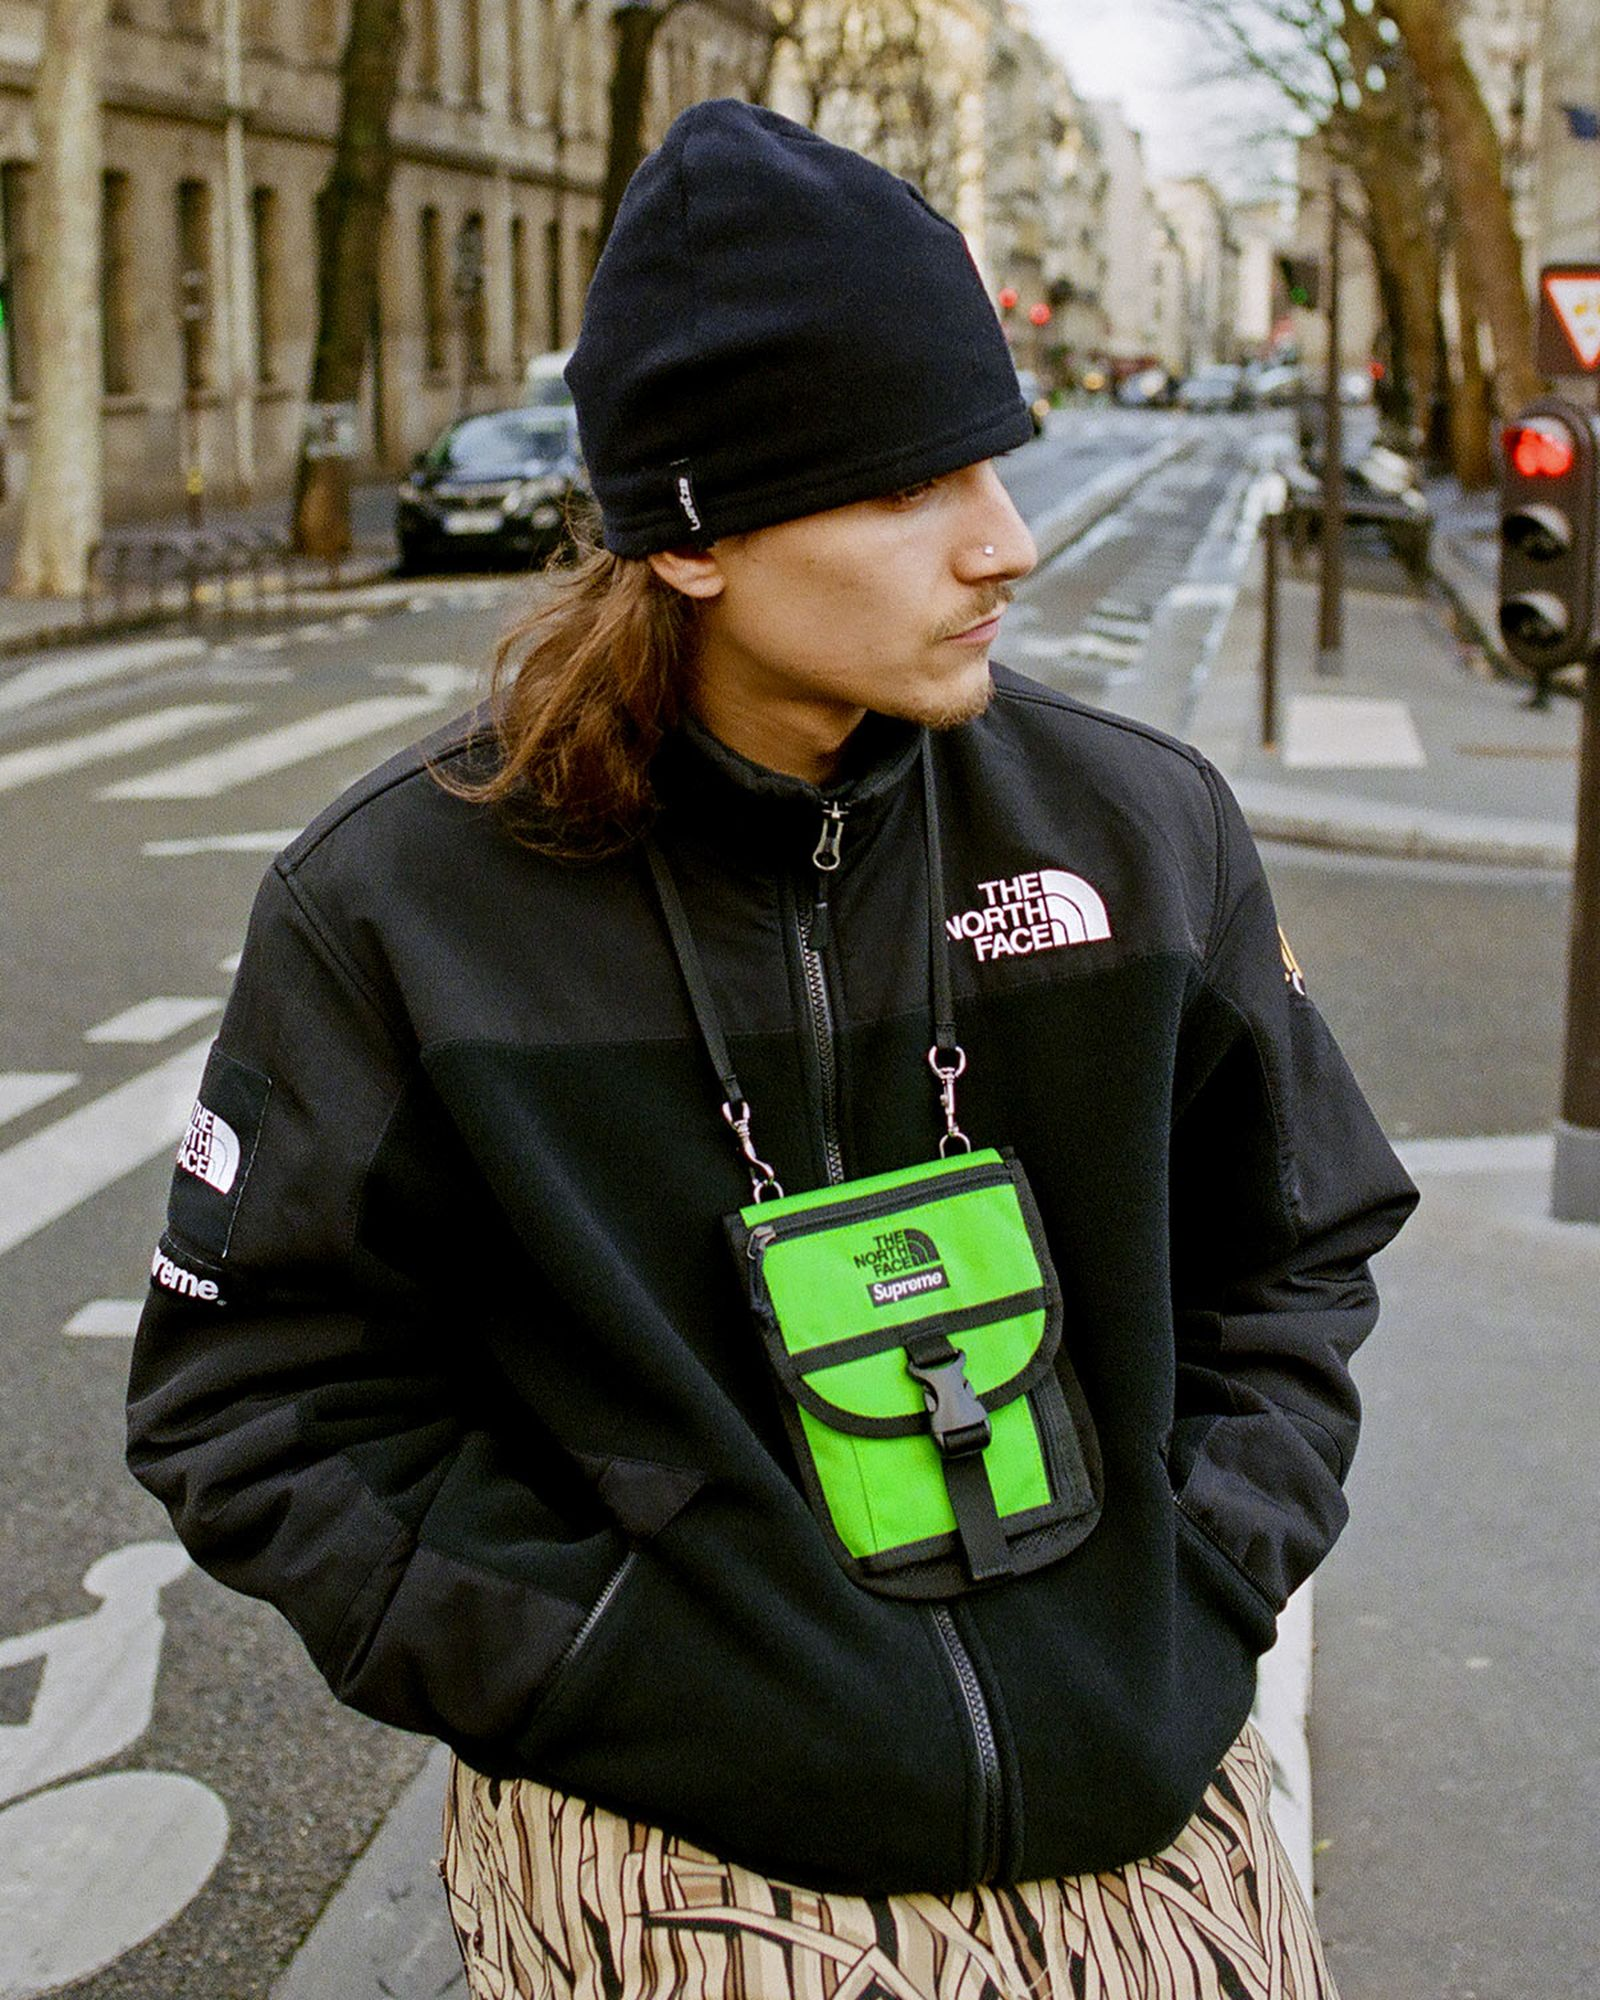 Man Wearing Supreme x The North Face RTG Fleece Jacket in Black With Lime Green Bag